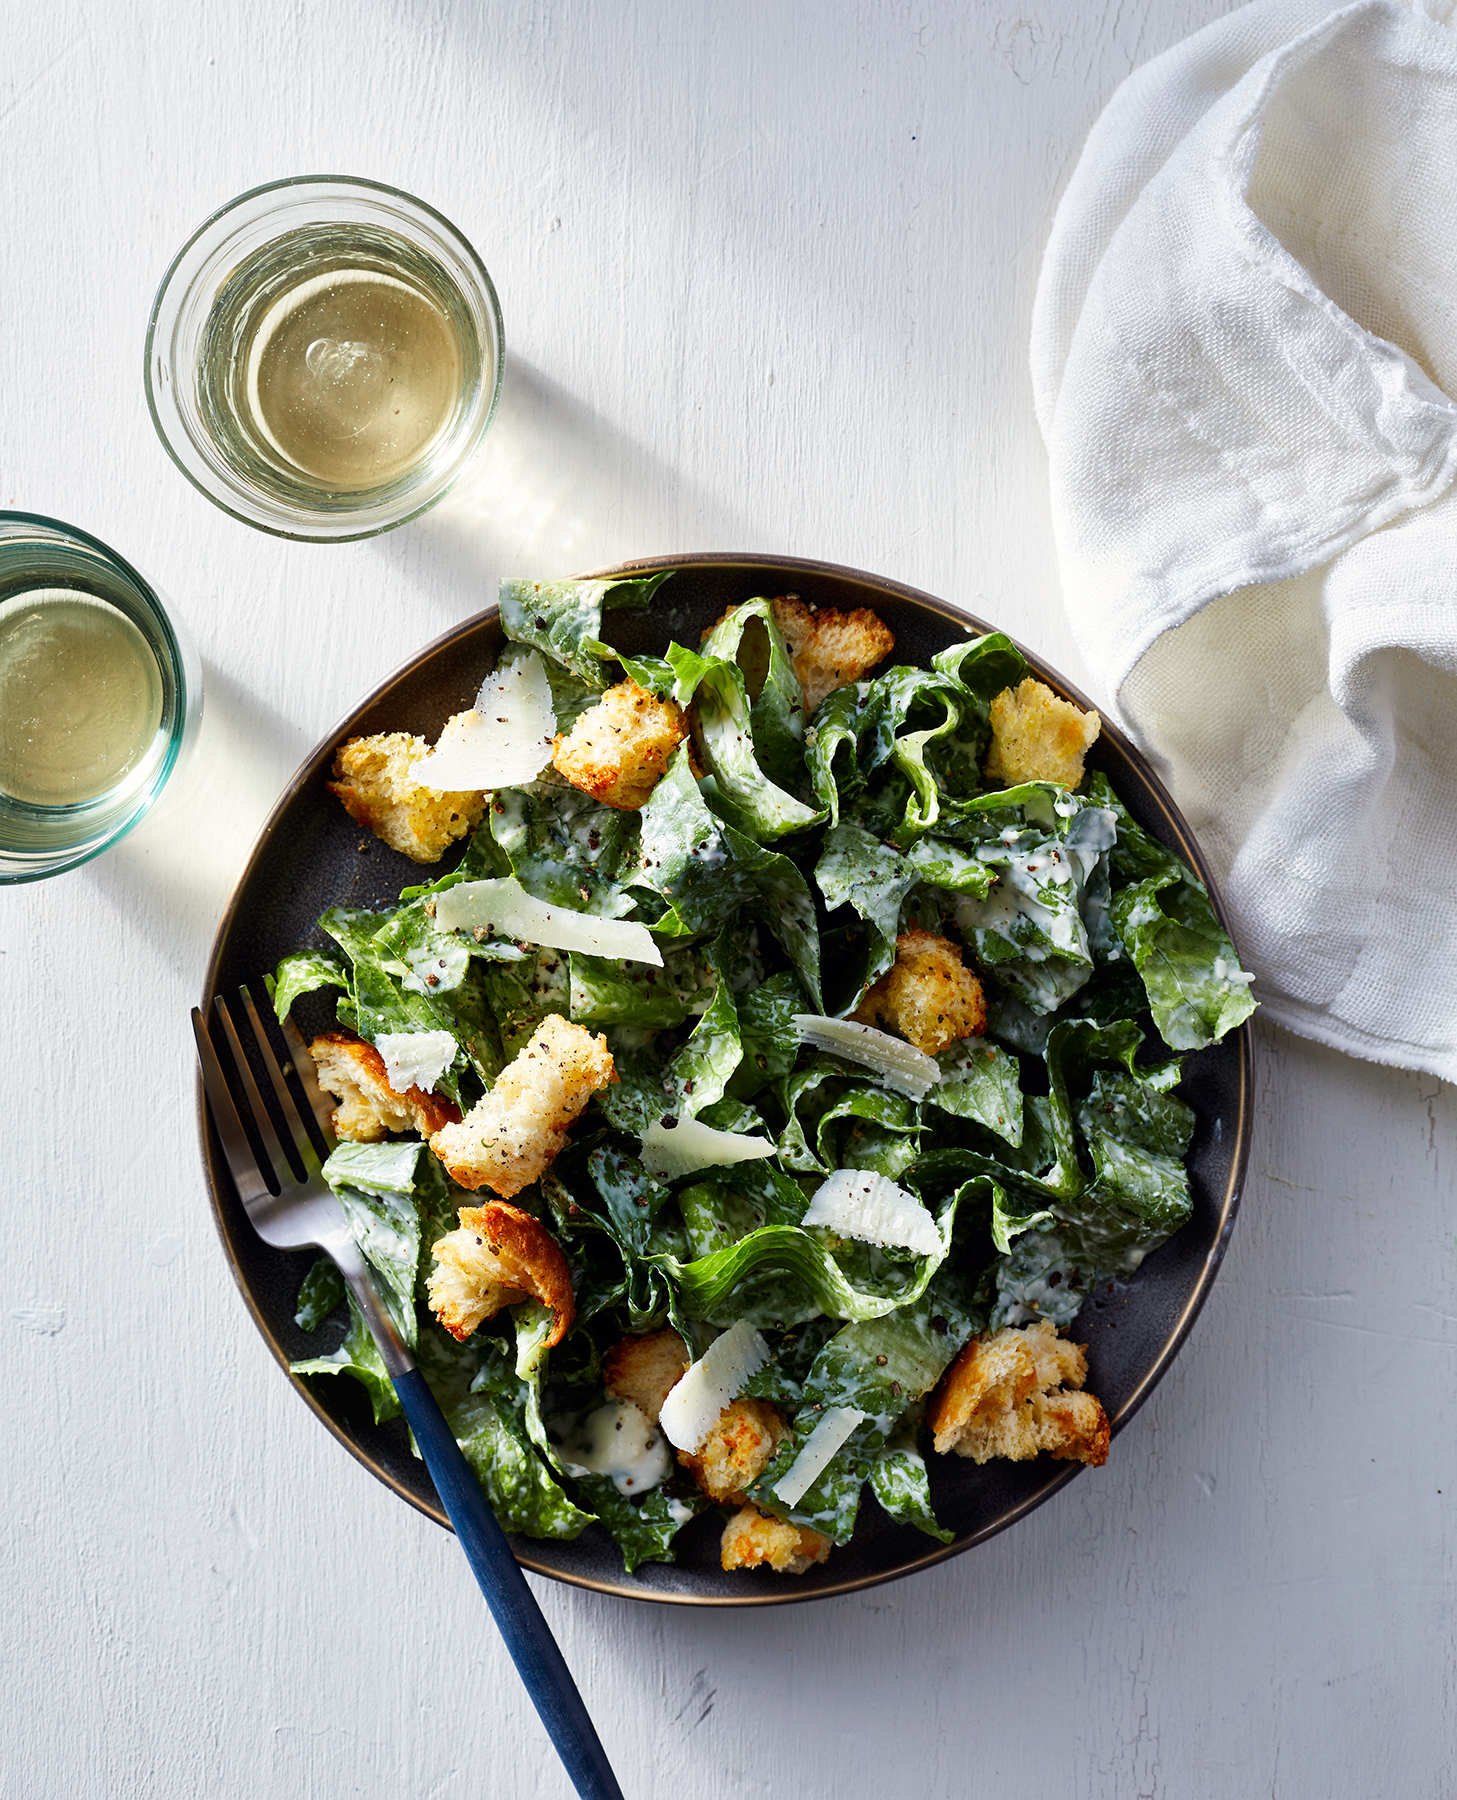 Caesar Salad With Yogurt-Parmesan Dressing